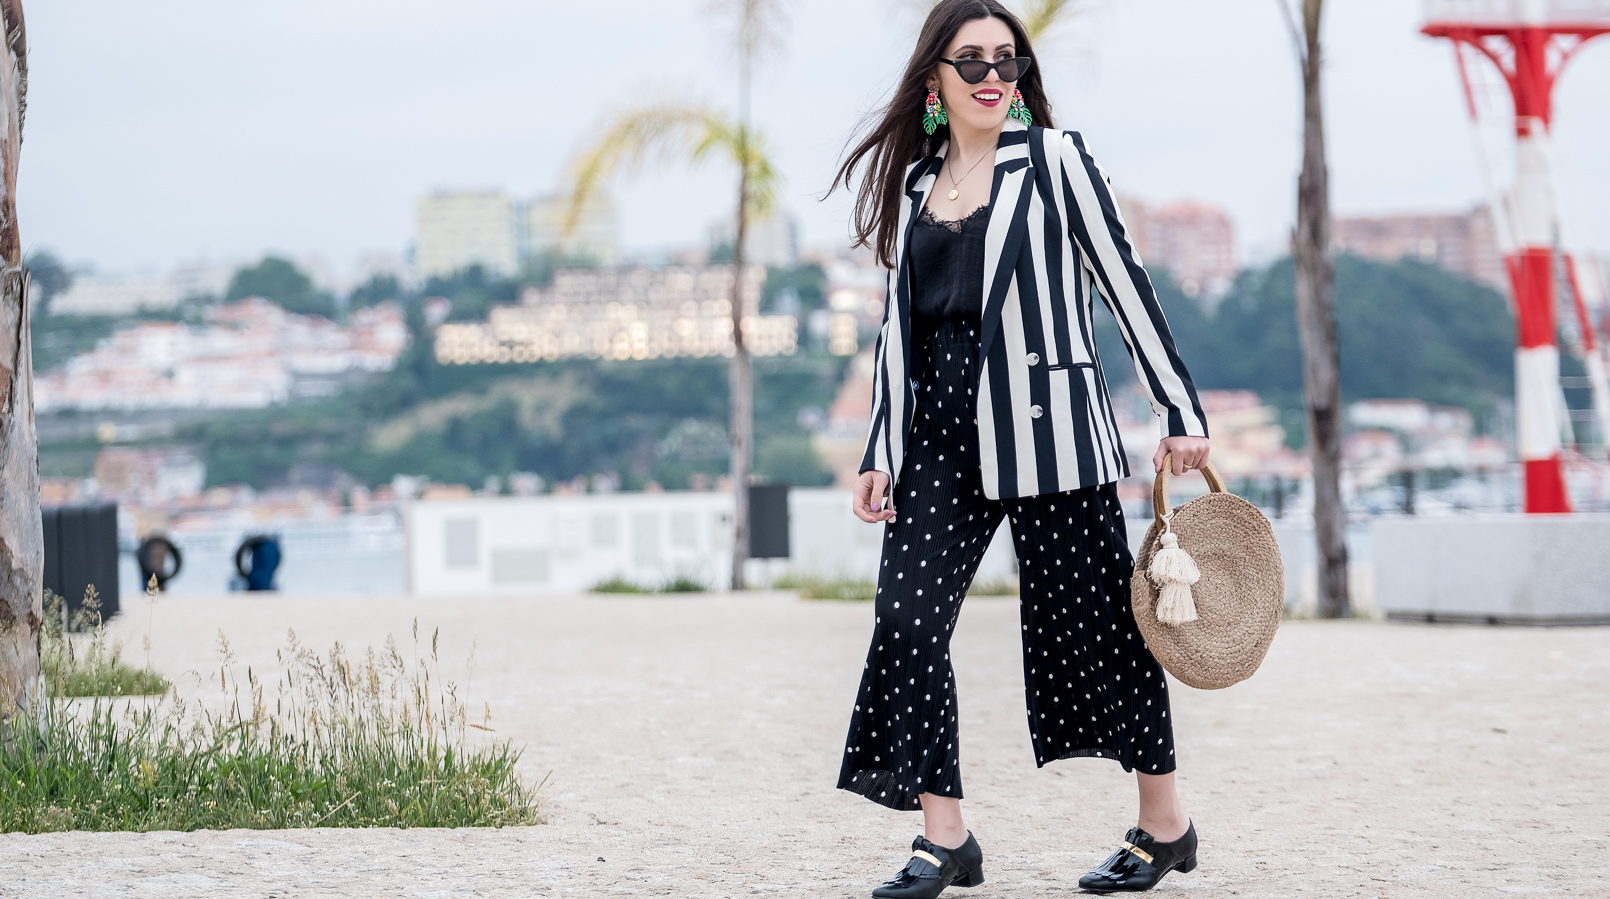 Le Fashionaire Stripes and polka dots in the same outfit: yay or nay? white black stripes hm blazer polka dots zara trousers gold fringes black vinyl eureka shoes round straw zara bag 0972F EN